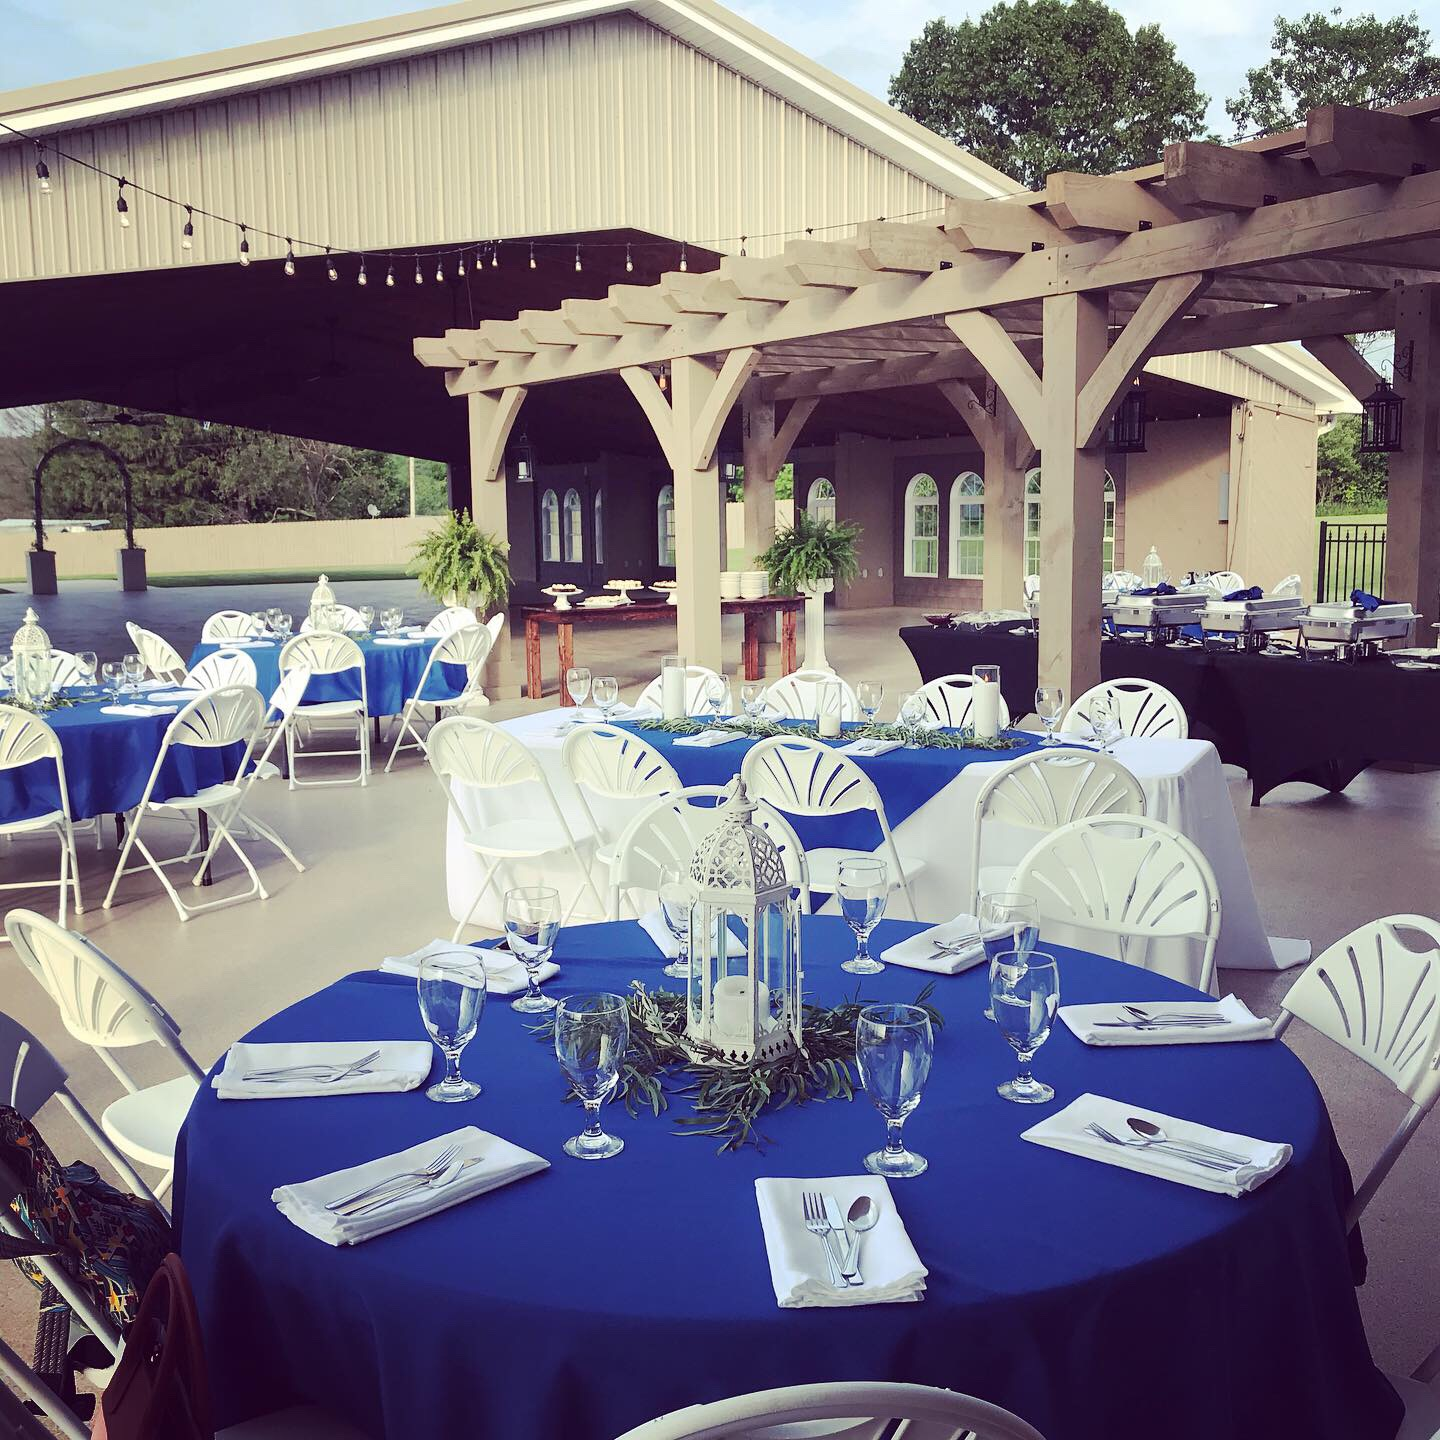 The Patio - No matter if it's an intimate dinner or large outside dance floor, the Patio is a great place to share special moments during your wedding or event!